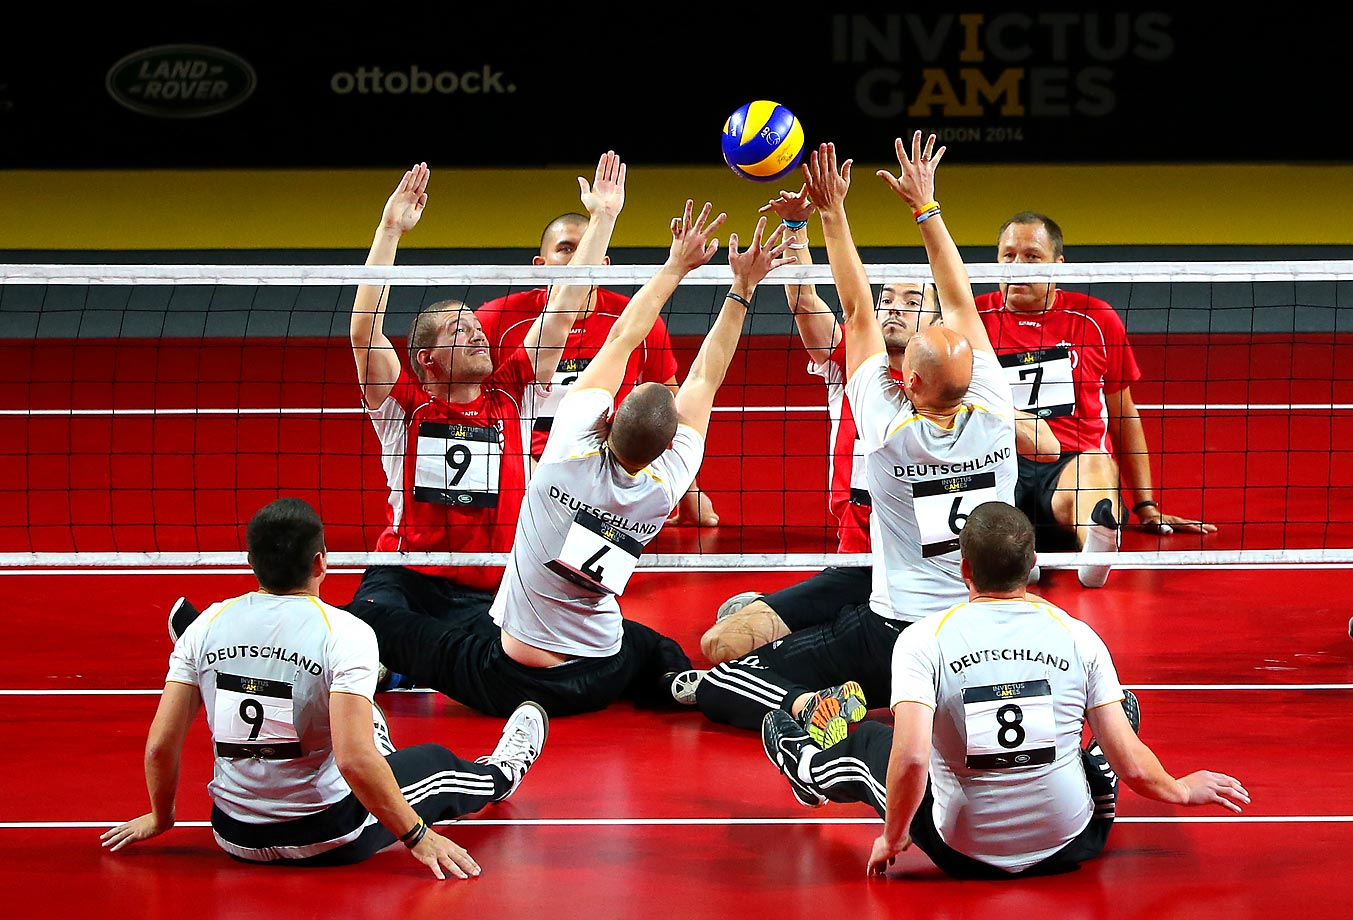 Denmark and Germany play in the Sitting Volleyball playoffs at the Queen Elizabeth Olympic Park.